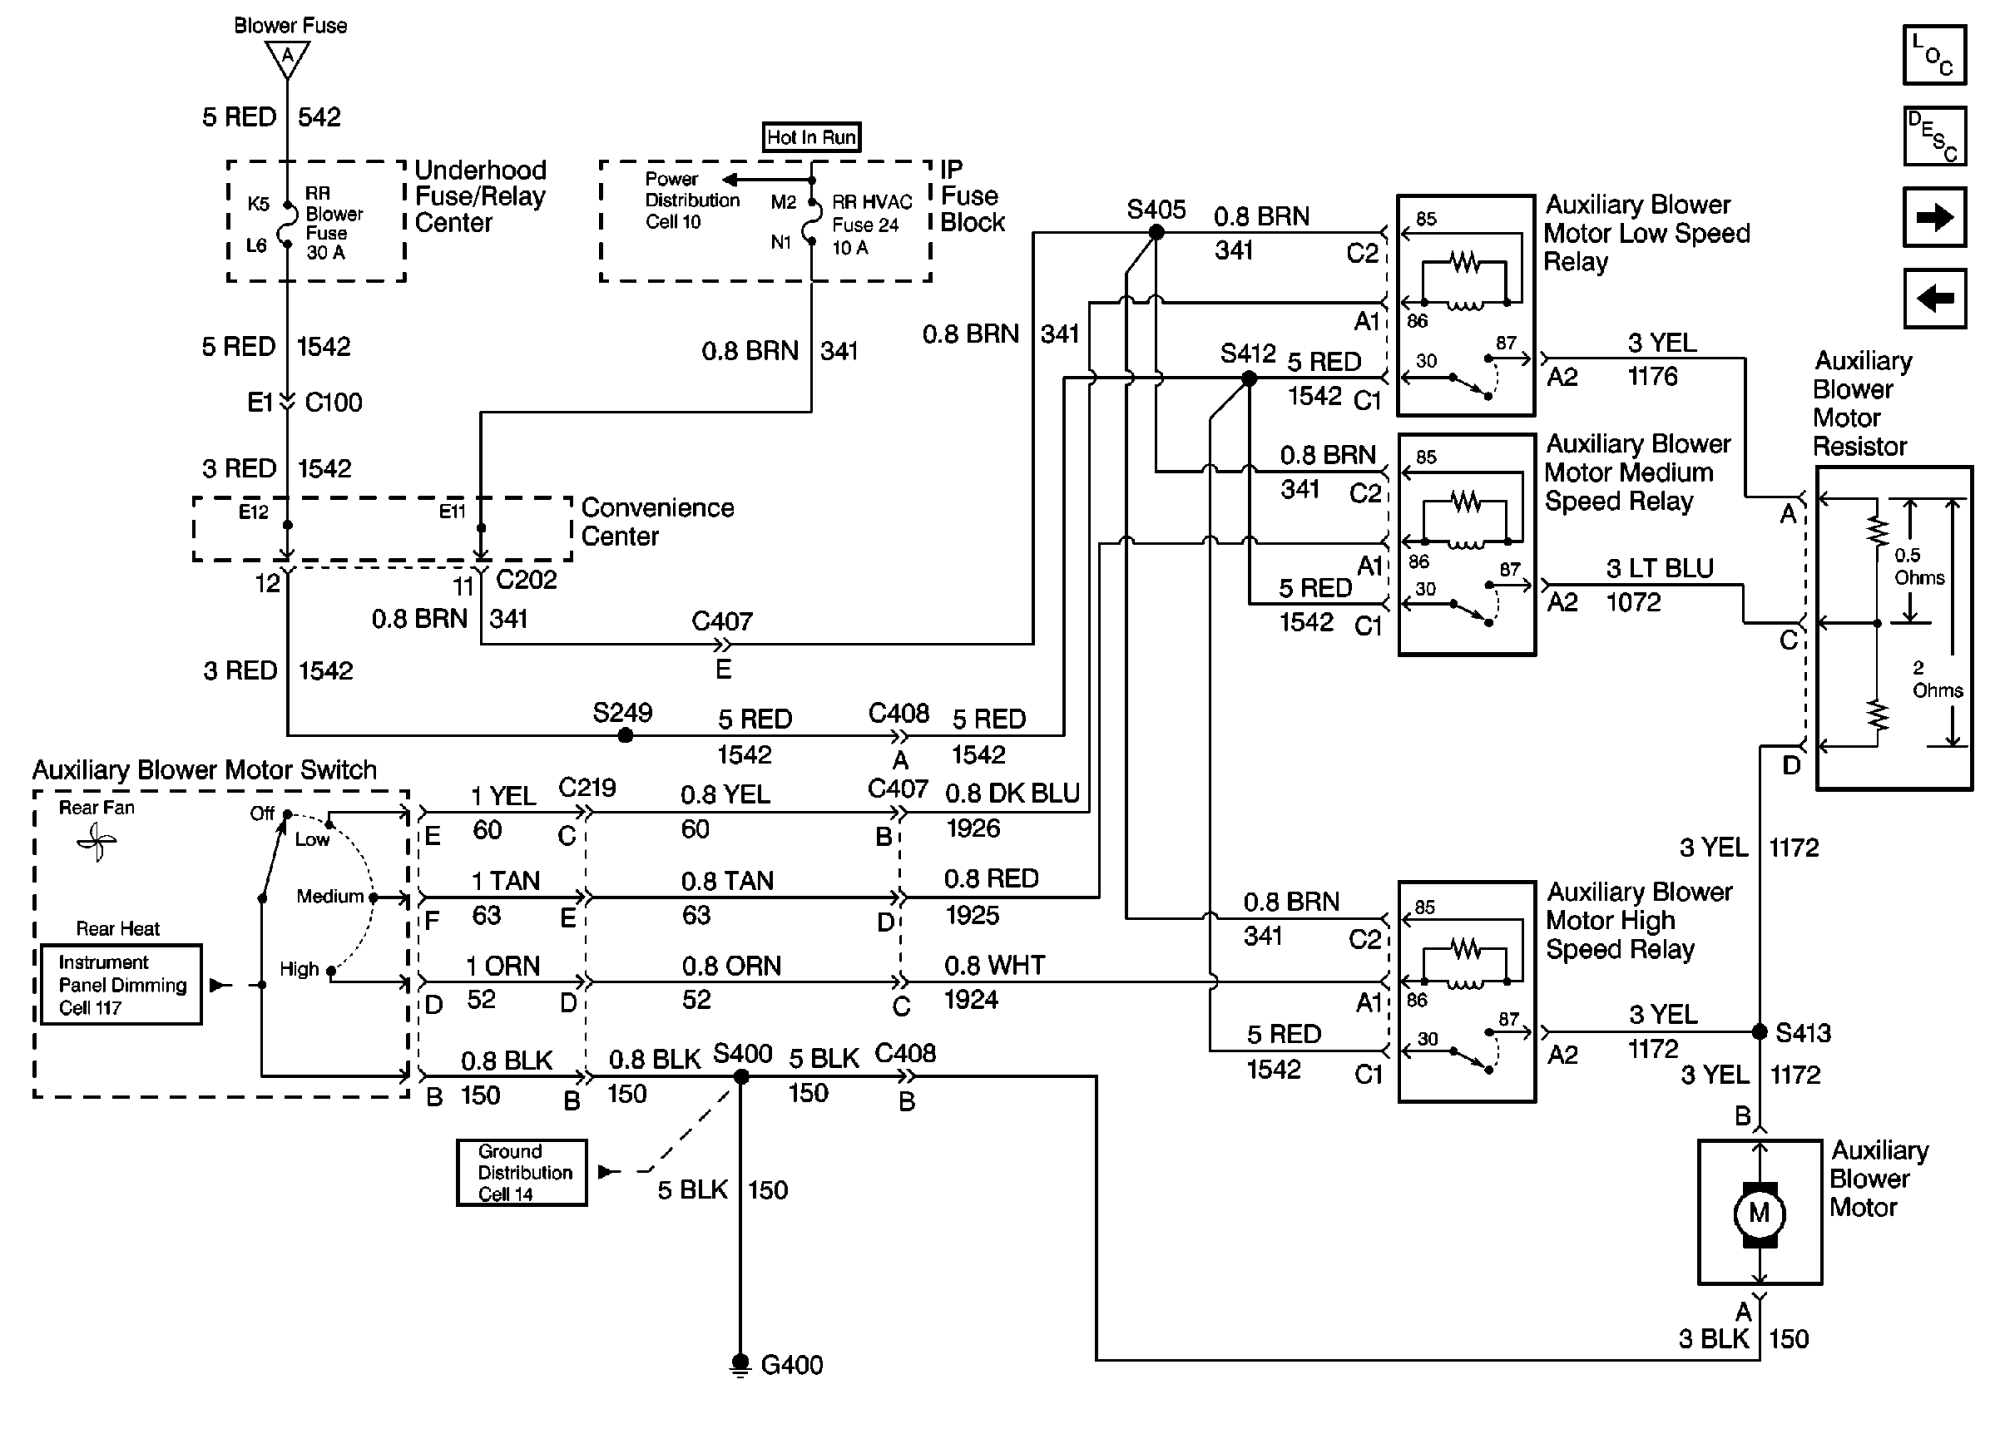 hight resolution of chevrolet express wiring diagram wiring diagram tagschevy express van fuel pump wiring diagram wiring diagram centre